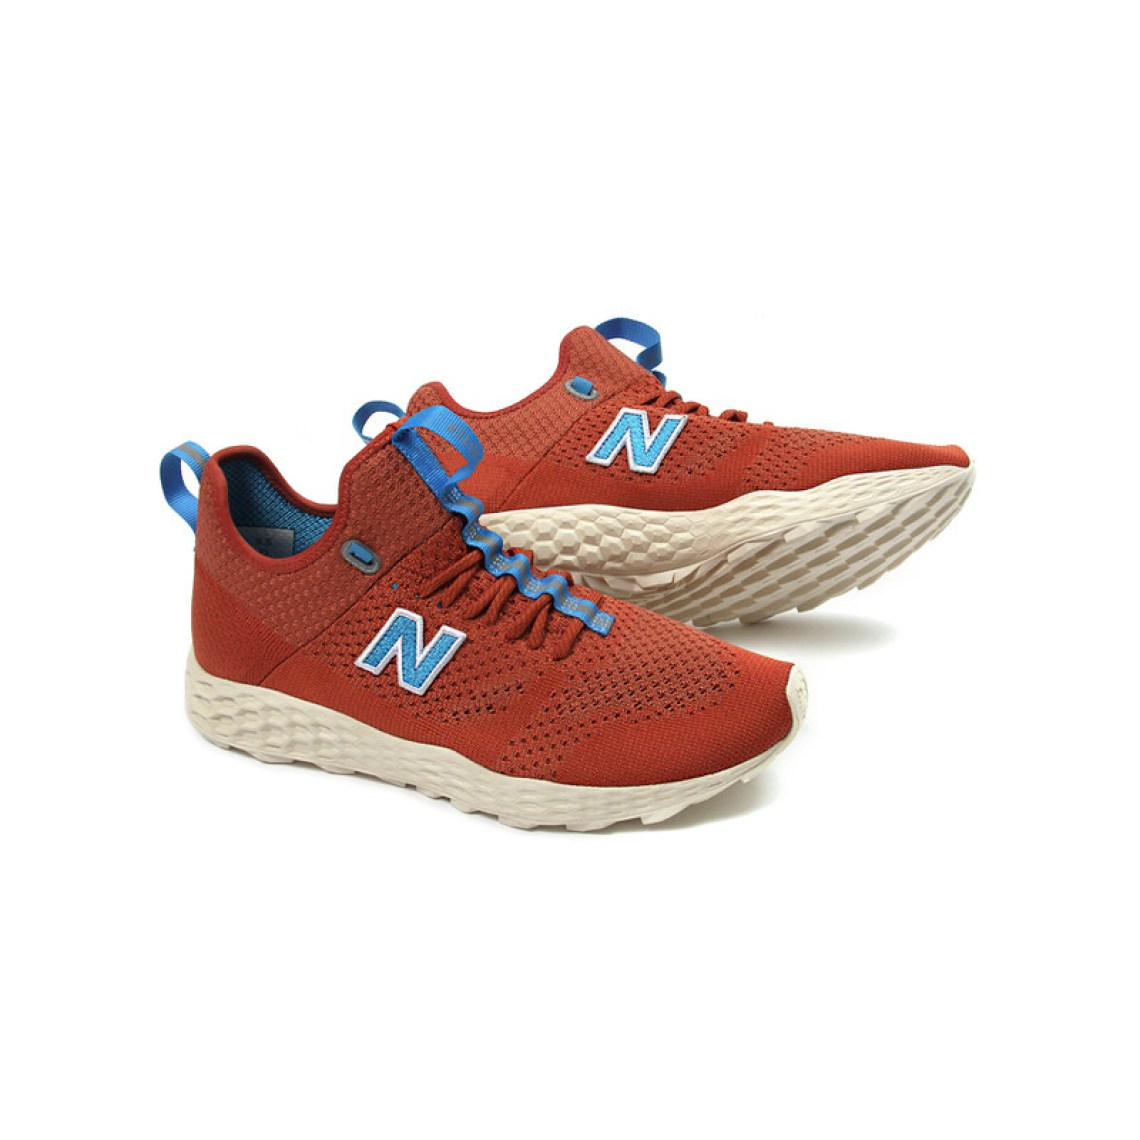 "Concepts x New Balance Trailbuster Fresh Foam ""Des Sables"""